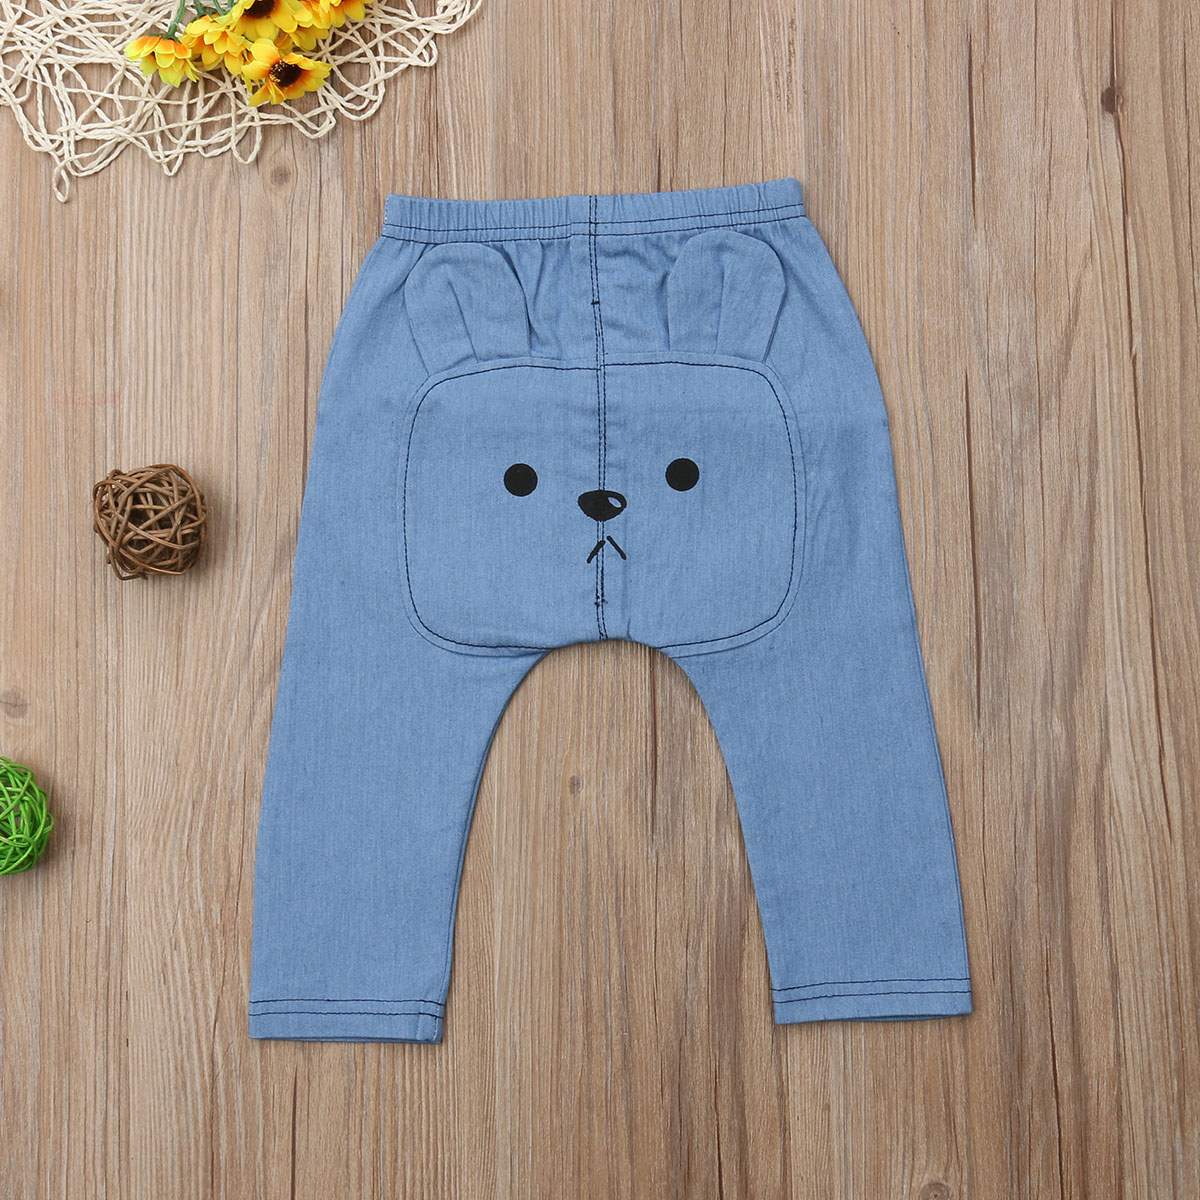 Infant Baby Boys&Girls Clothes Cartoon Bears Denim Clothing Long Pants Bottoms Kids Trousers 0-3 Years 4